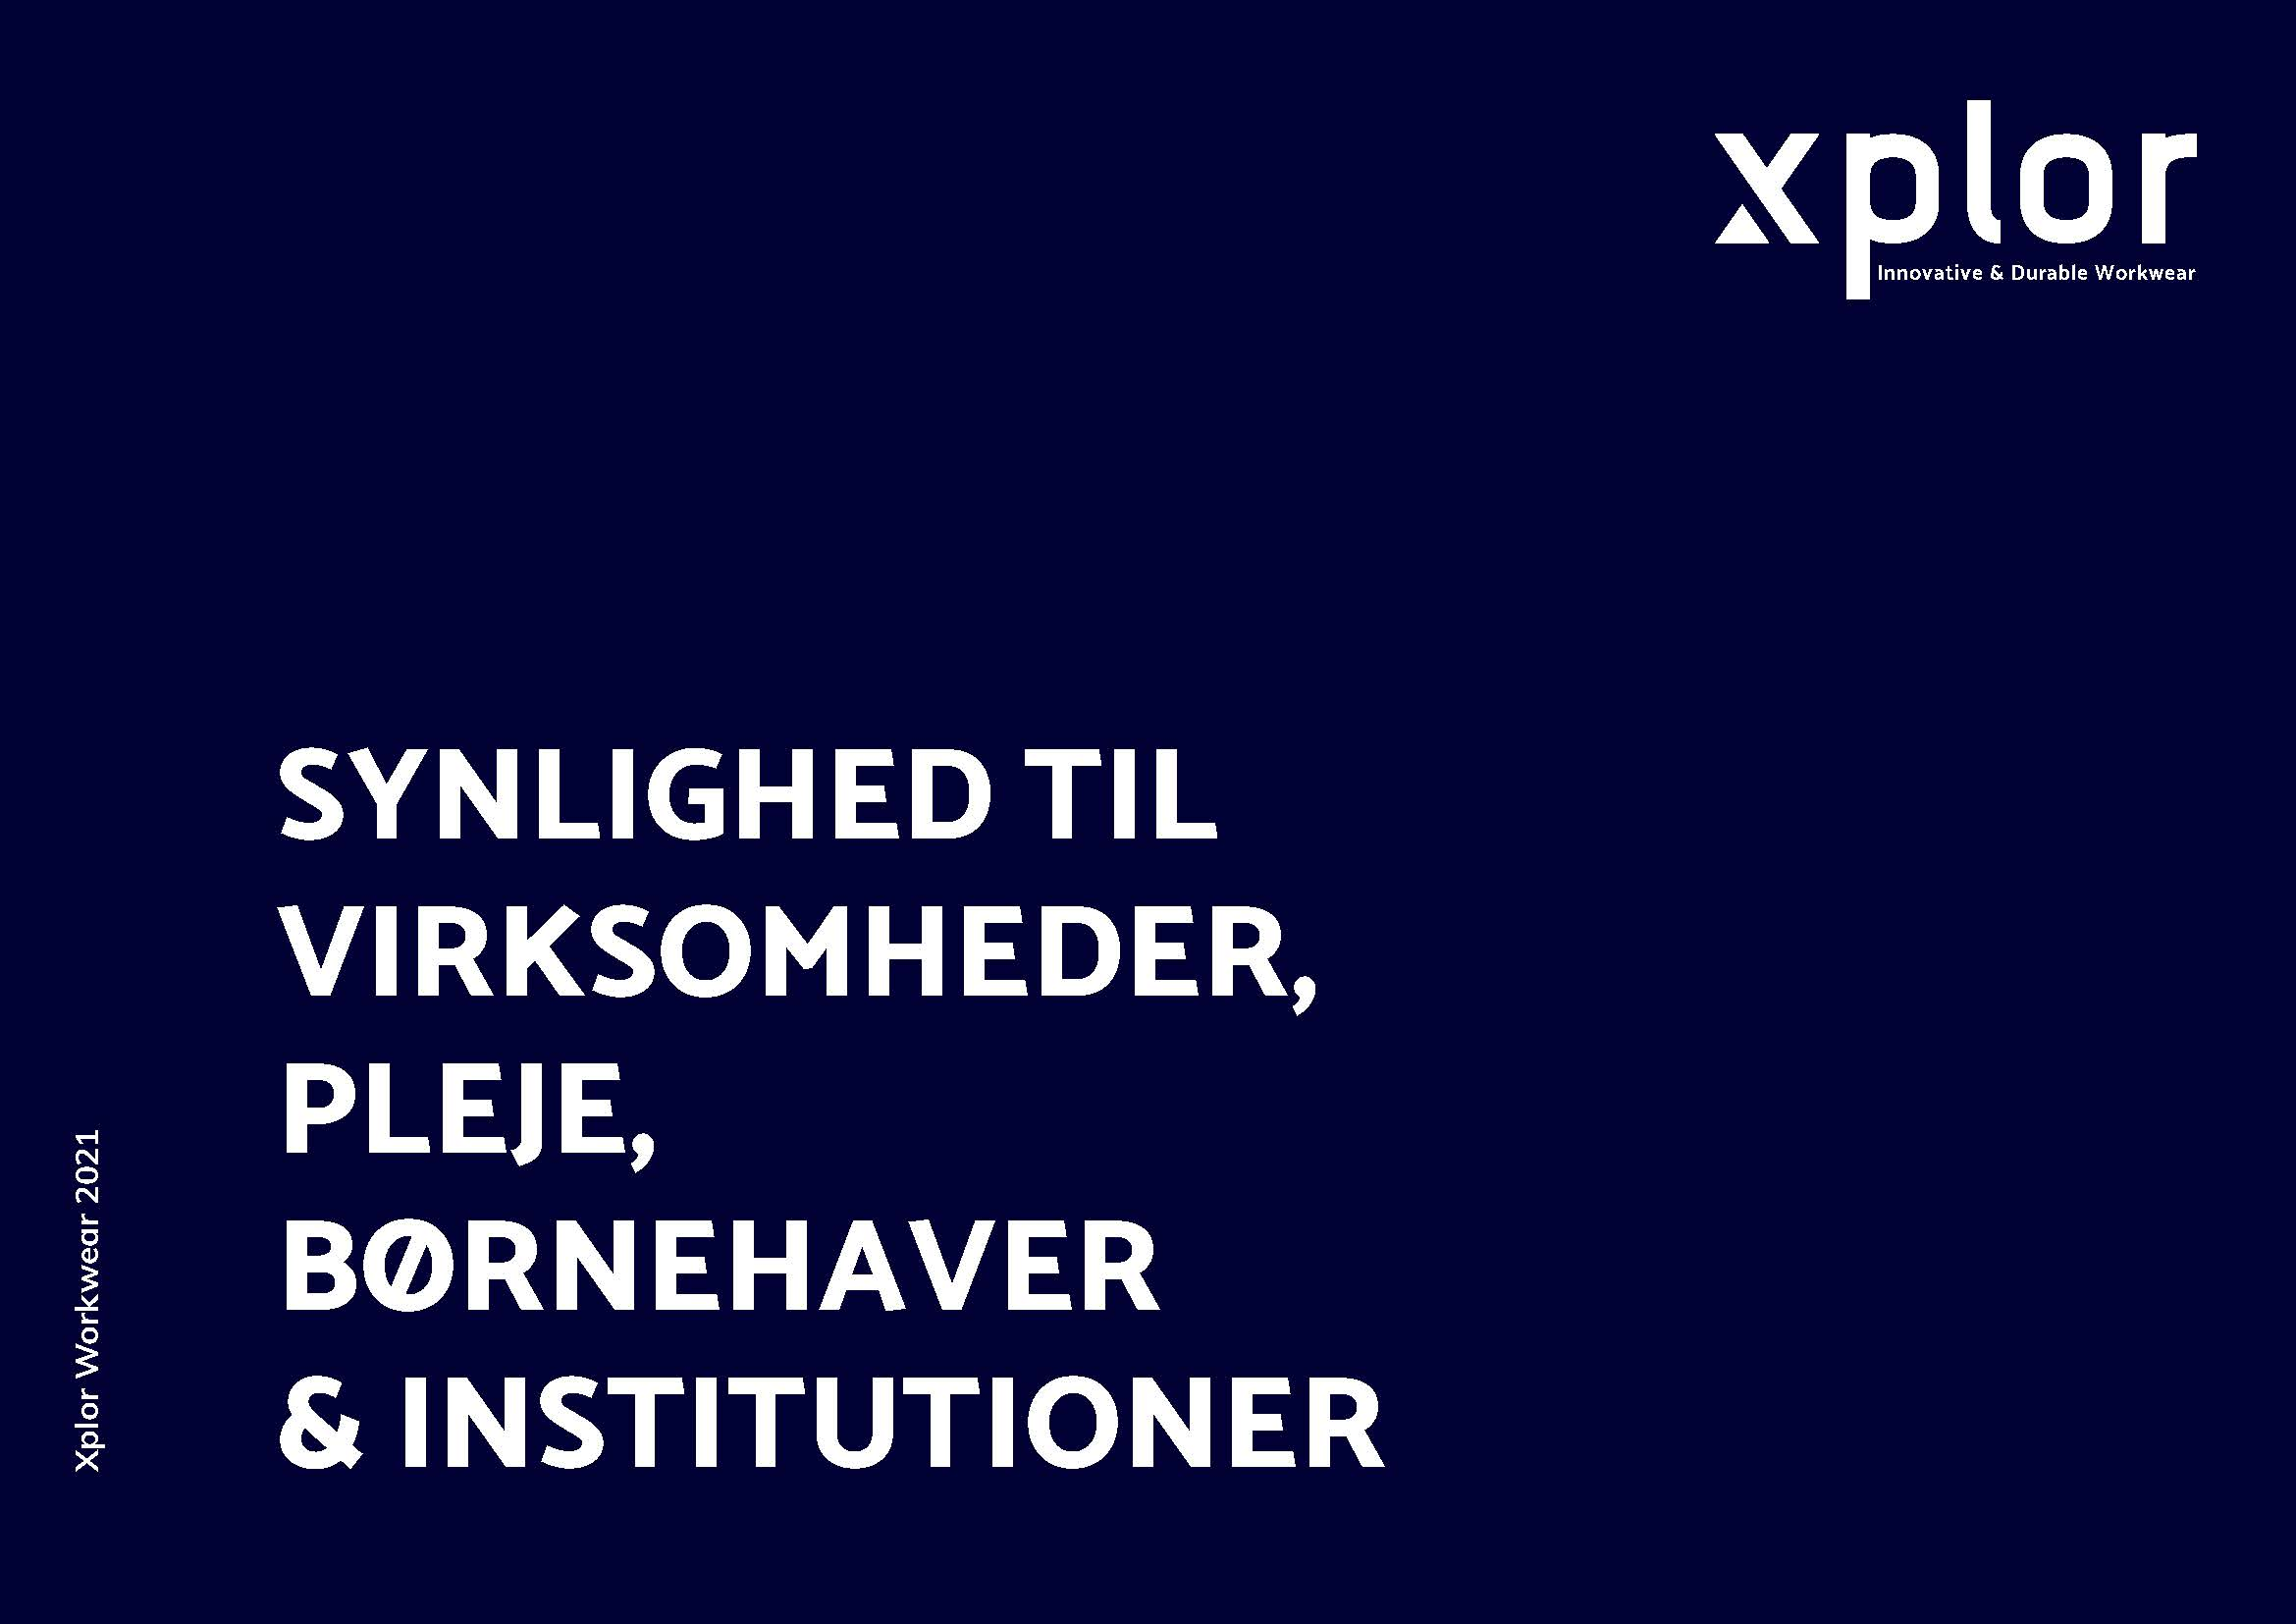 xplor katalog til institutioner